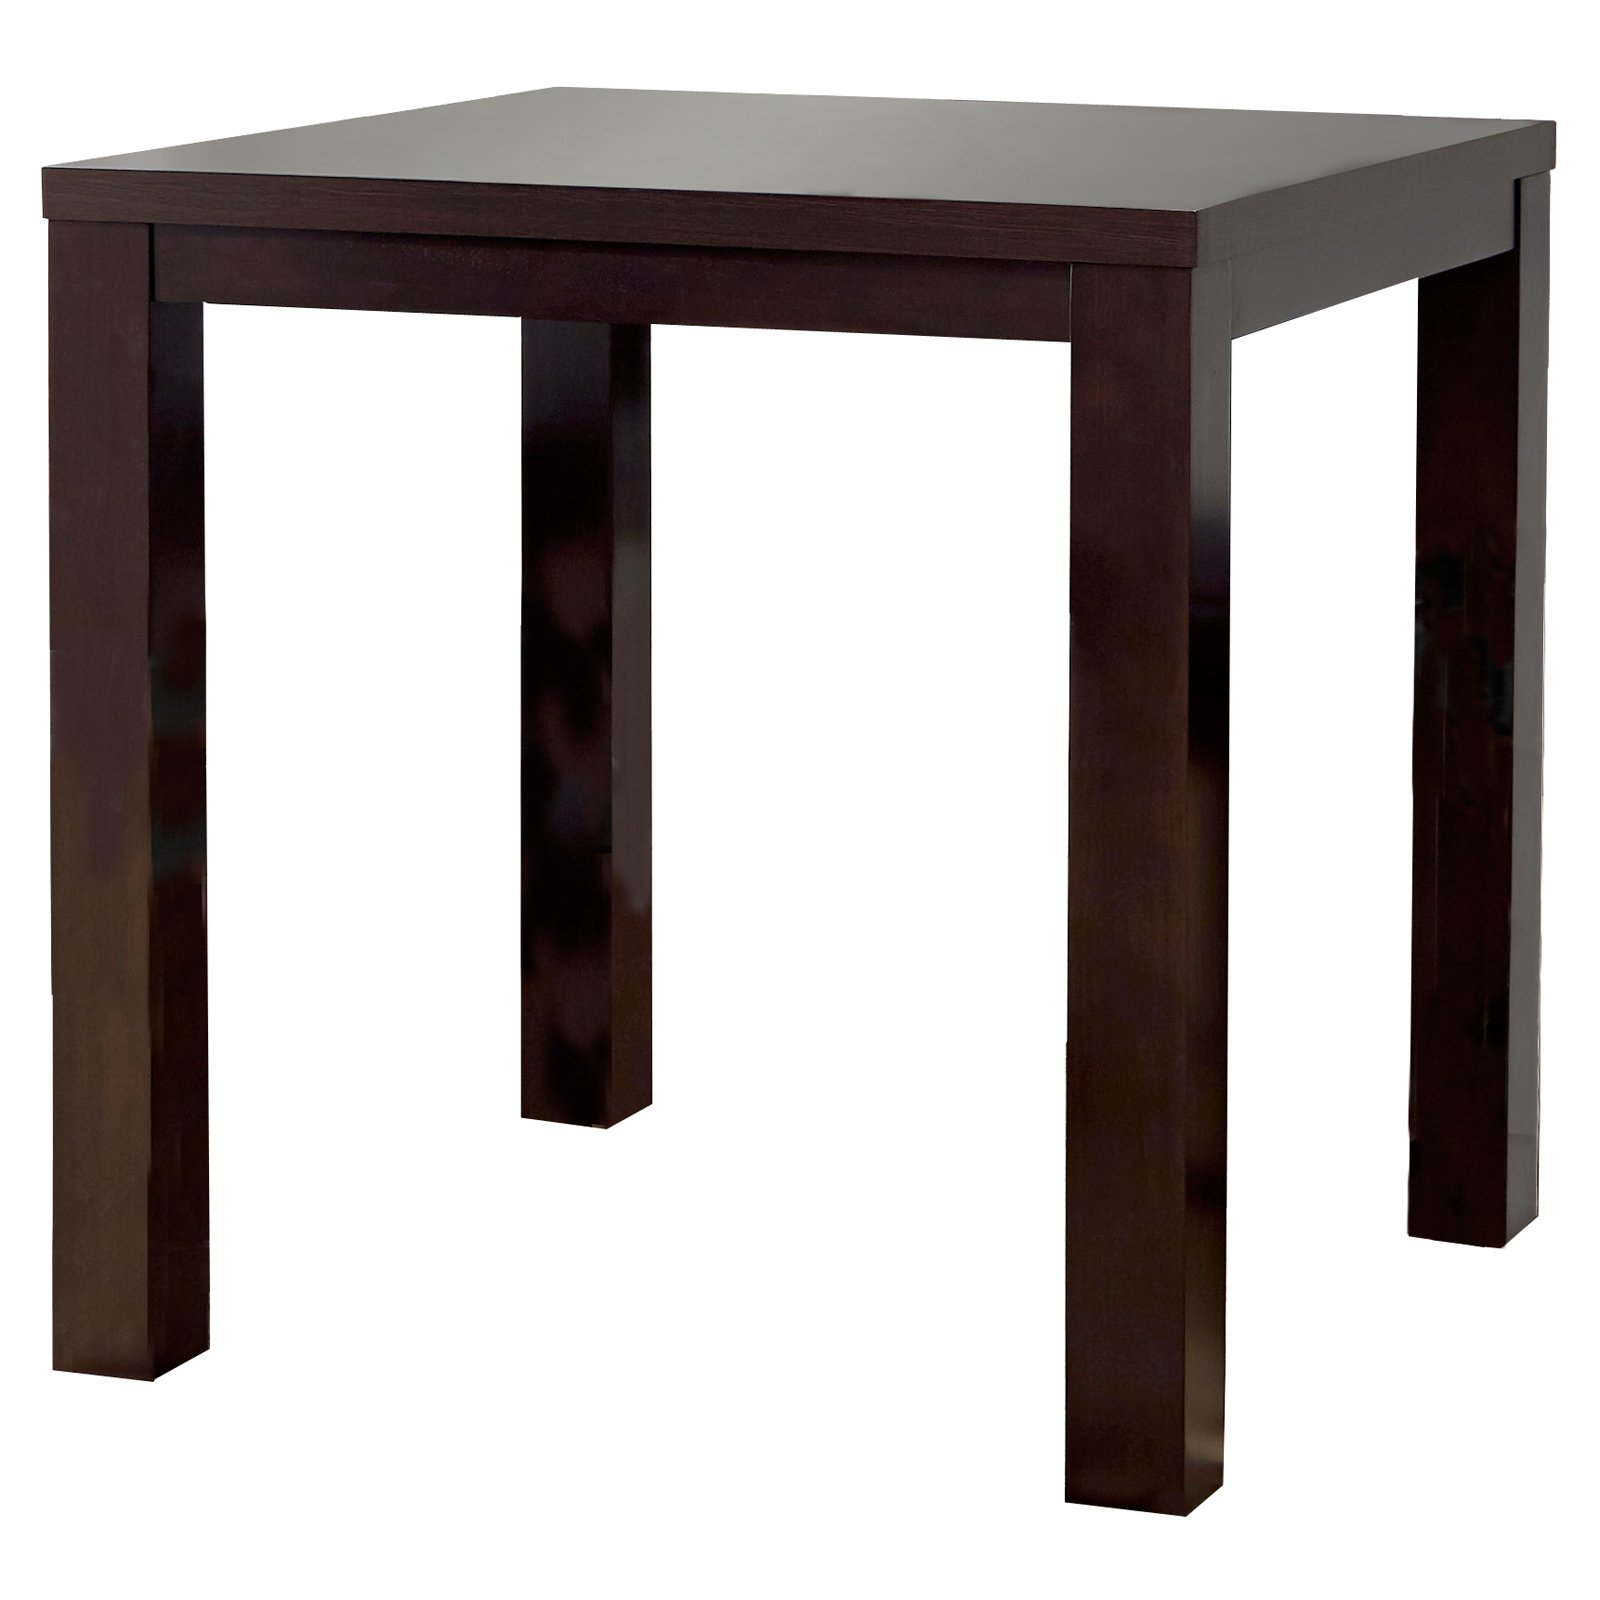 Progressive Furniture Athena Counter Height Dining Table